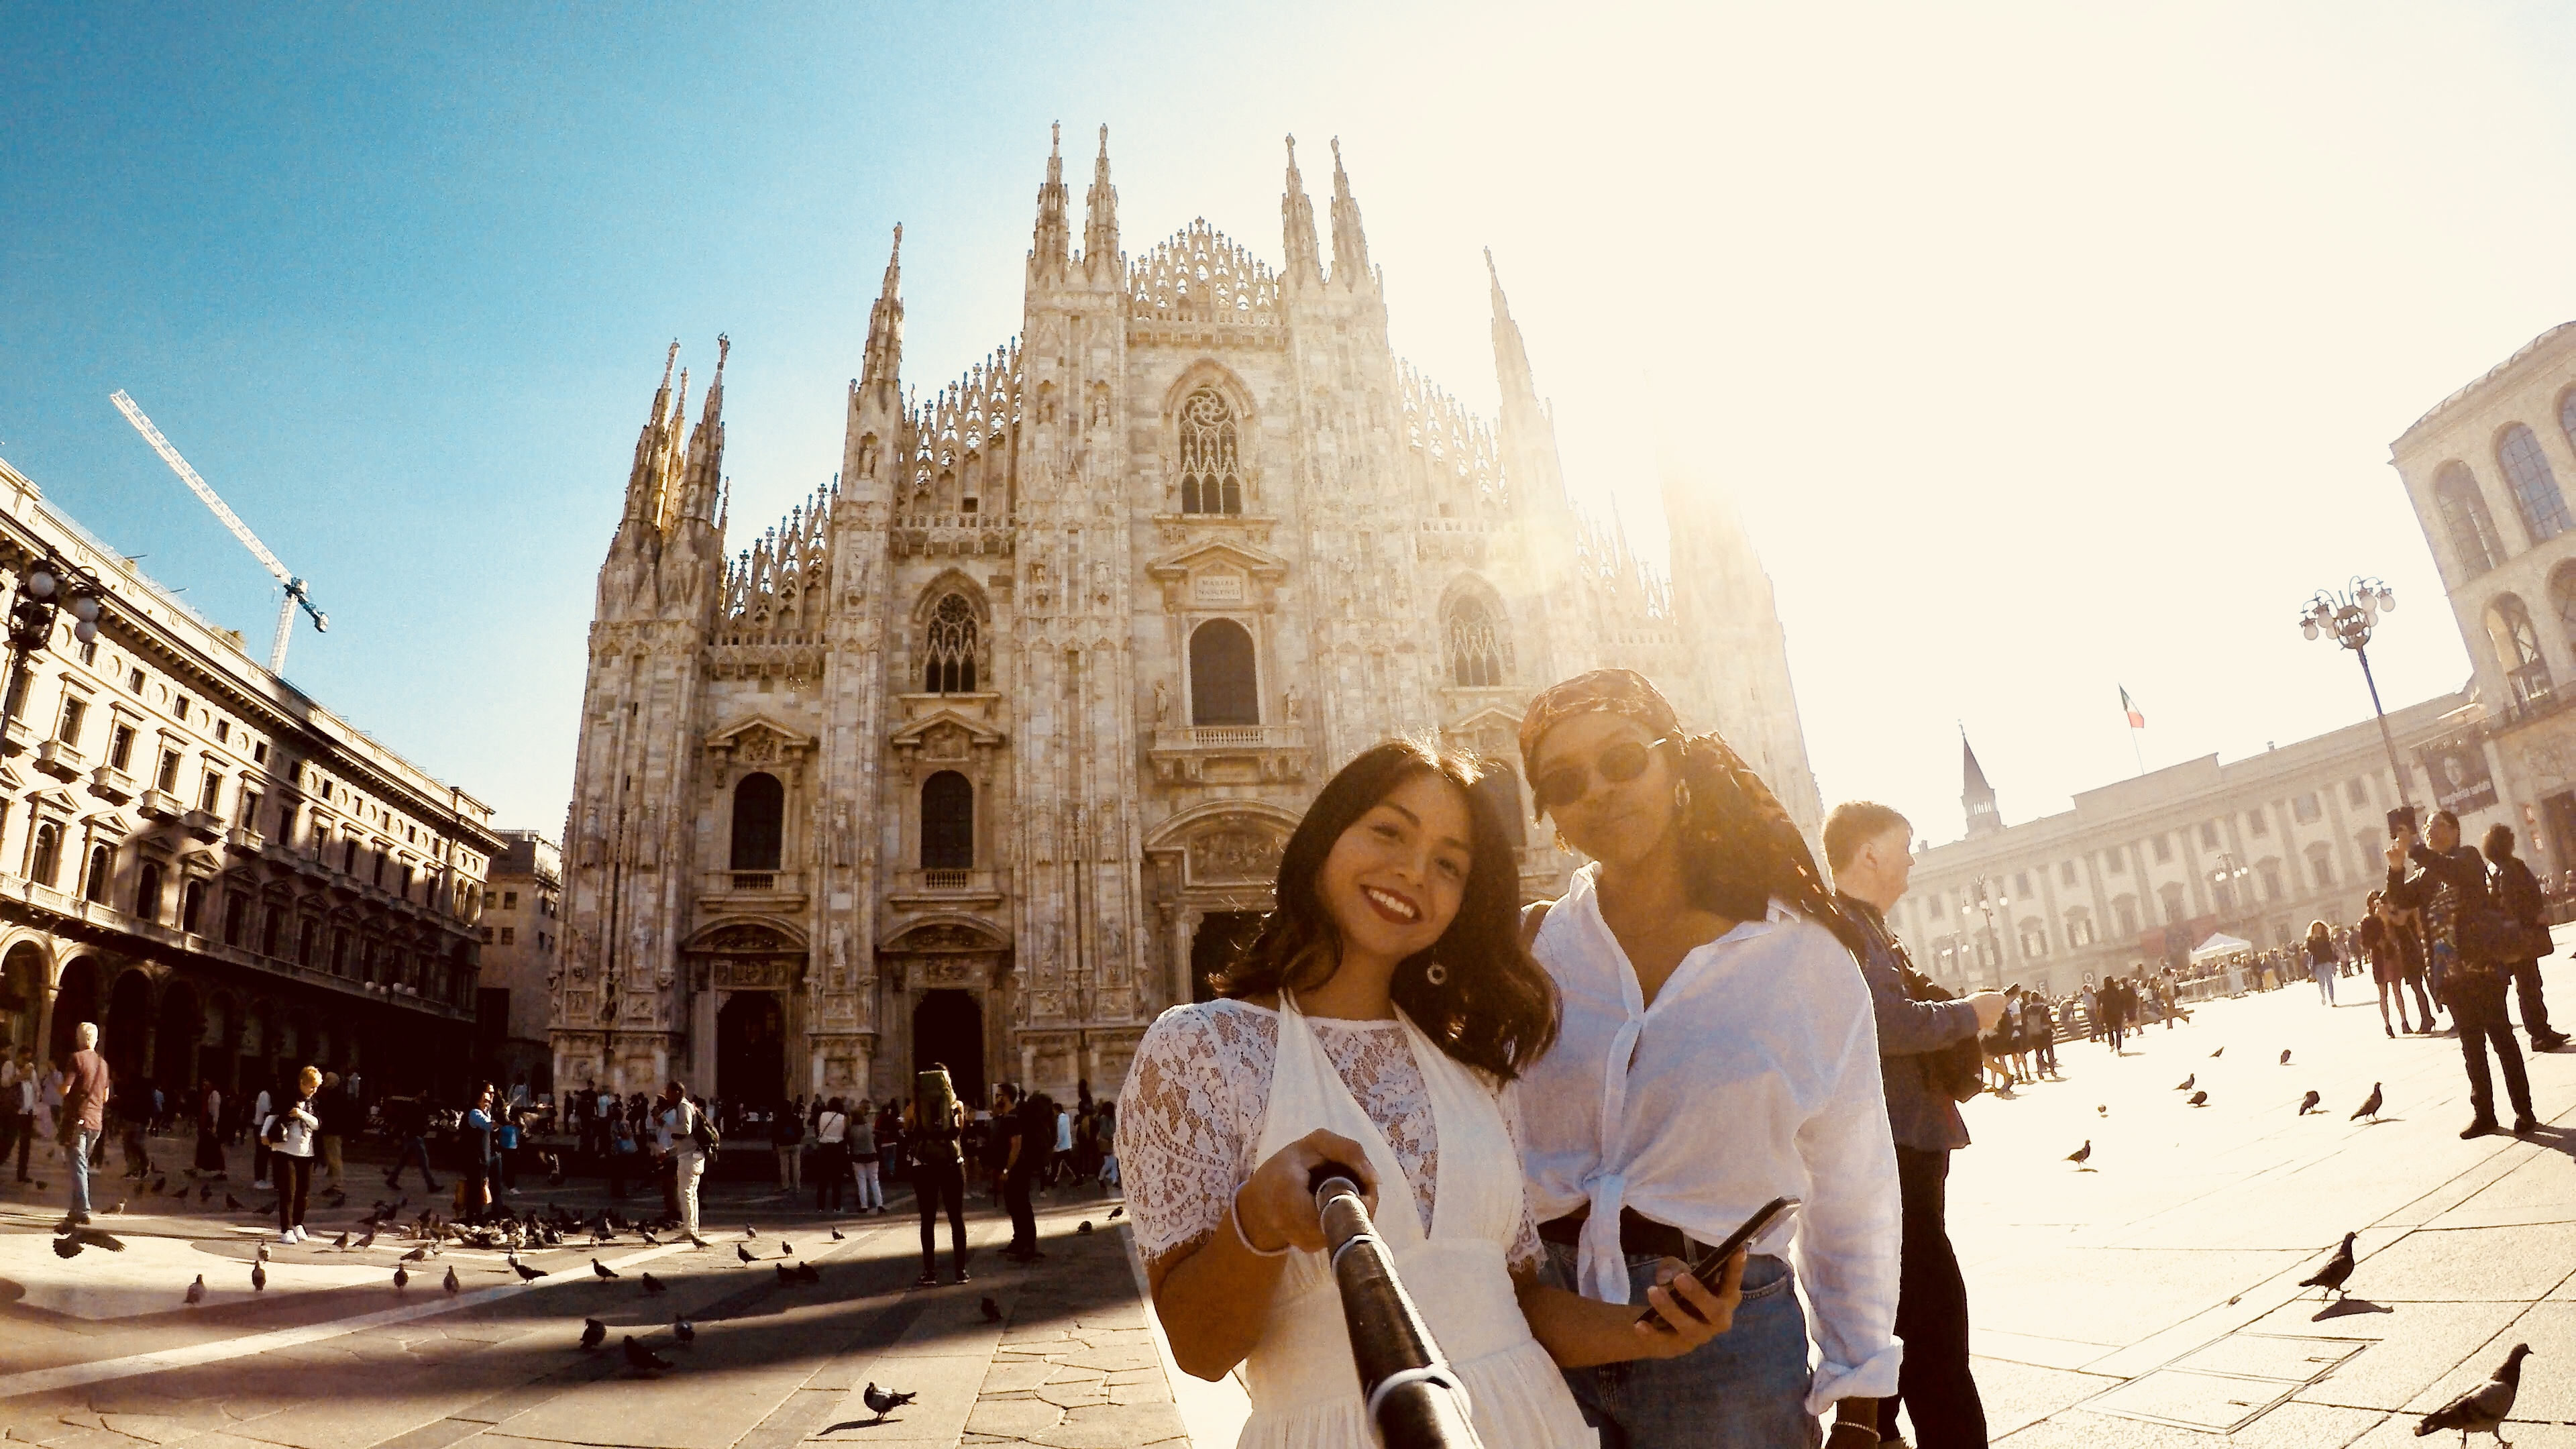 Two people take a selfie in front of Milan Duomo.